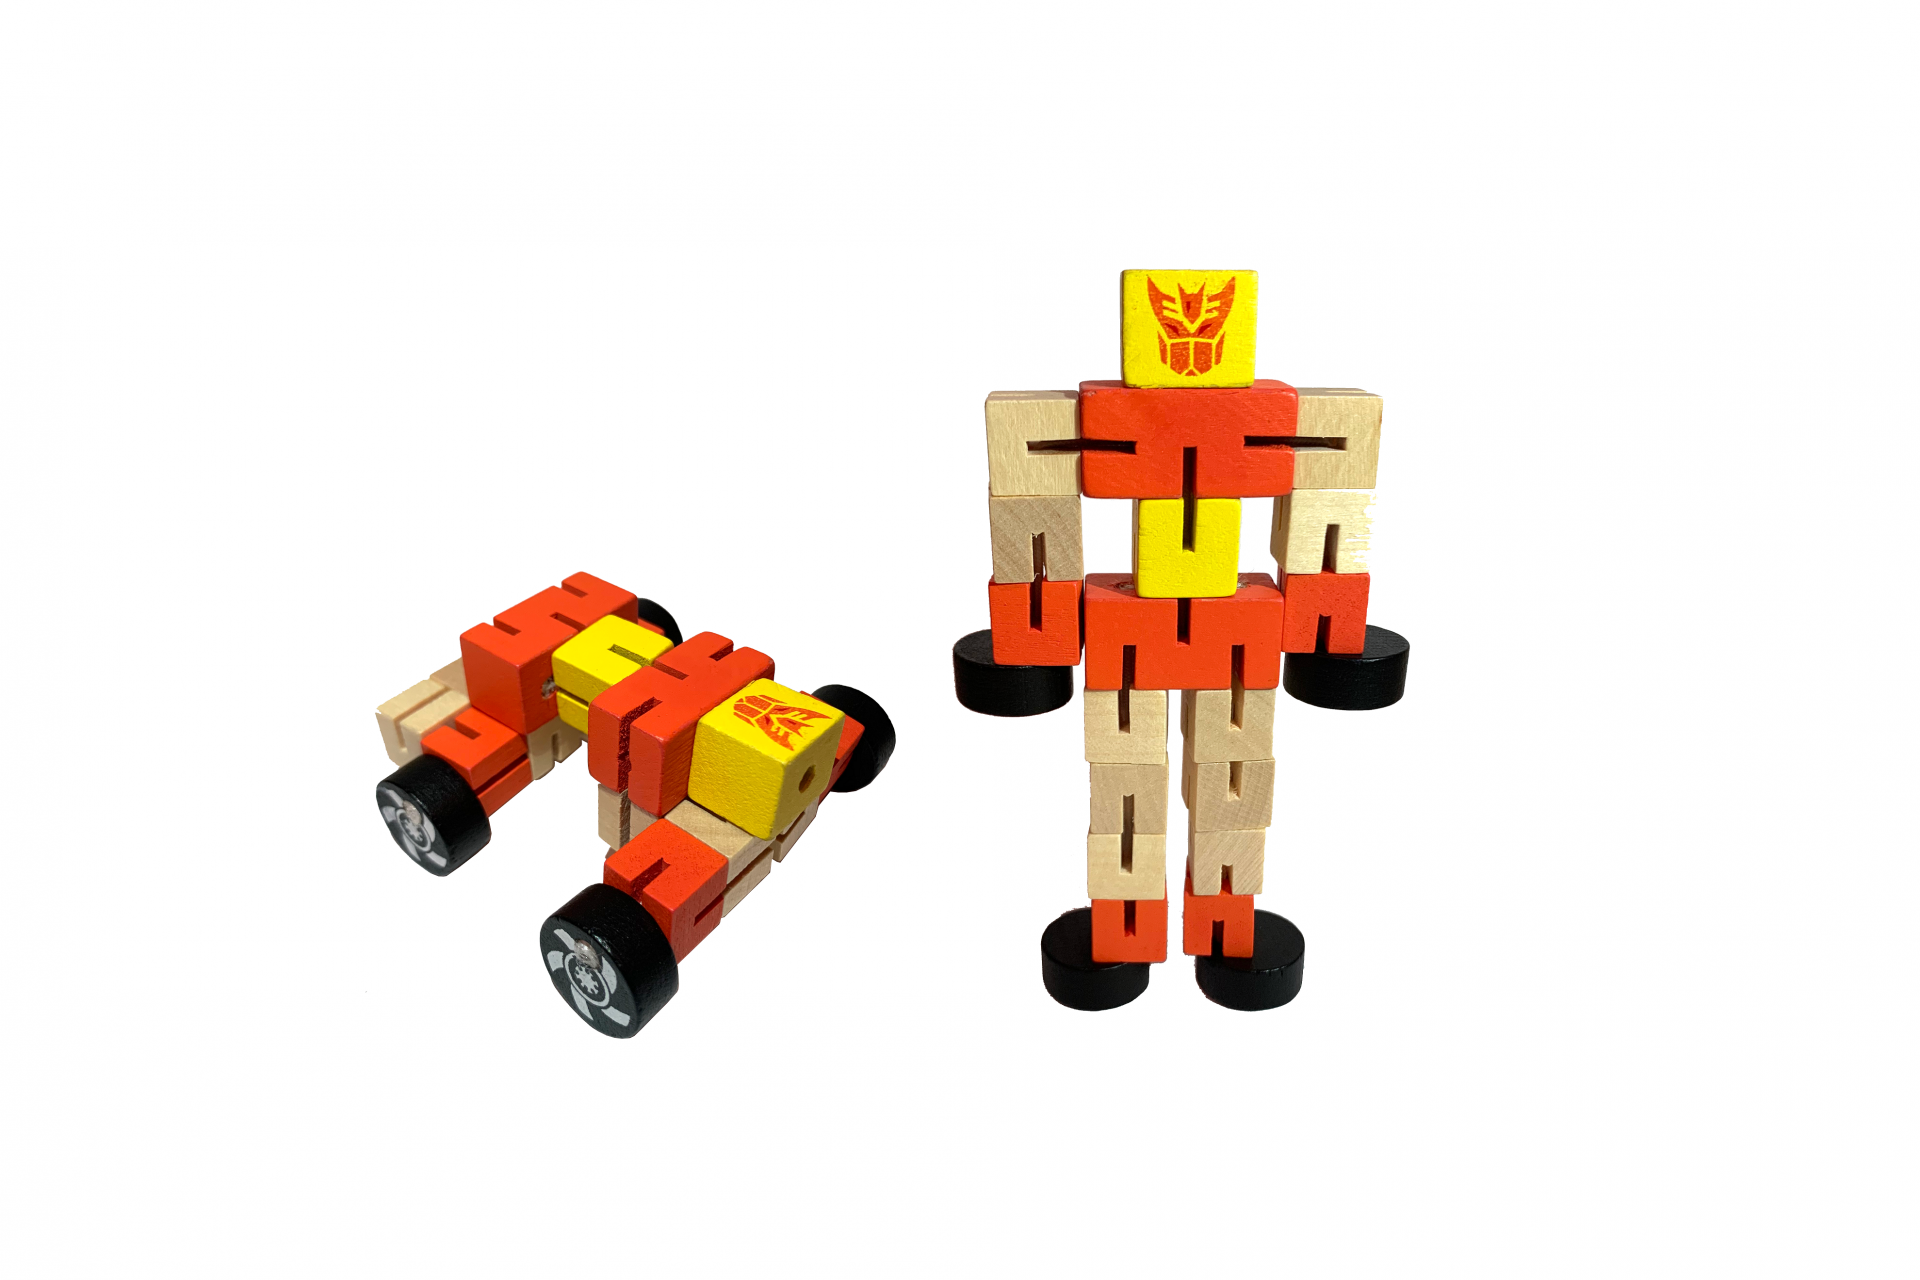 Small Transformer wooden sensory toy for tactile, visual and proprioceptive stimulation.